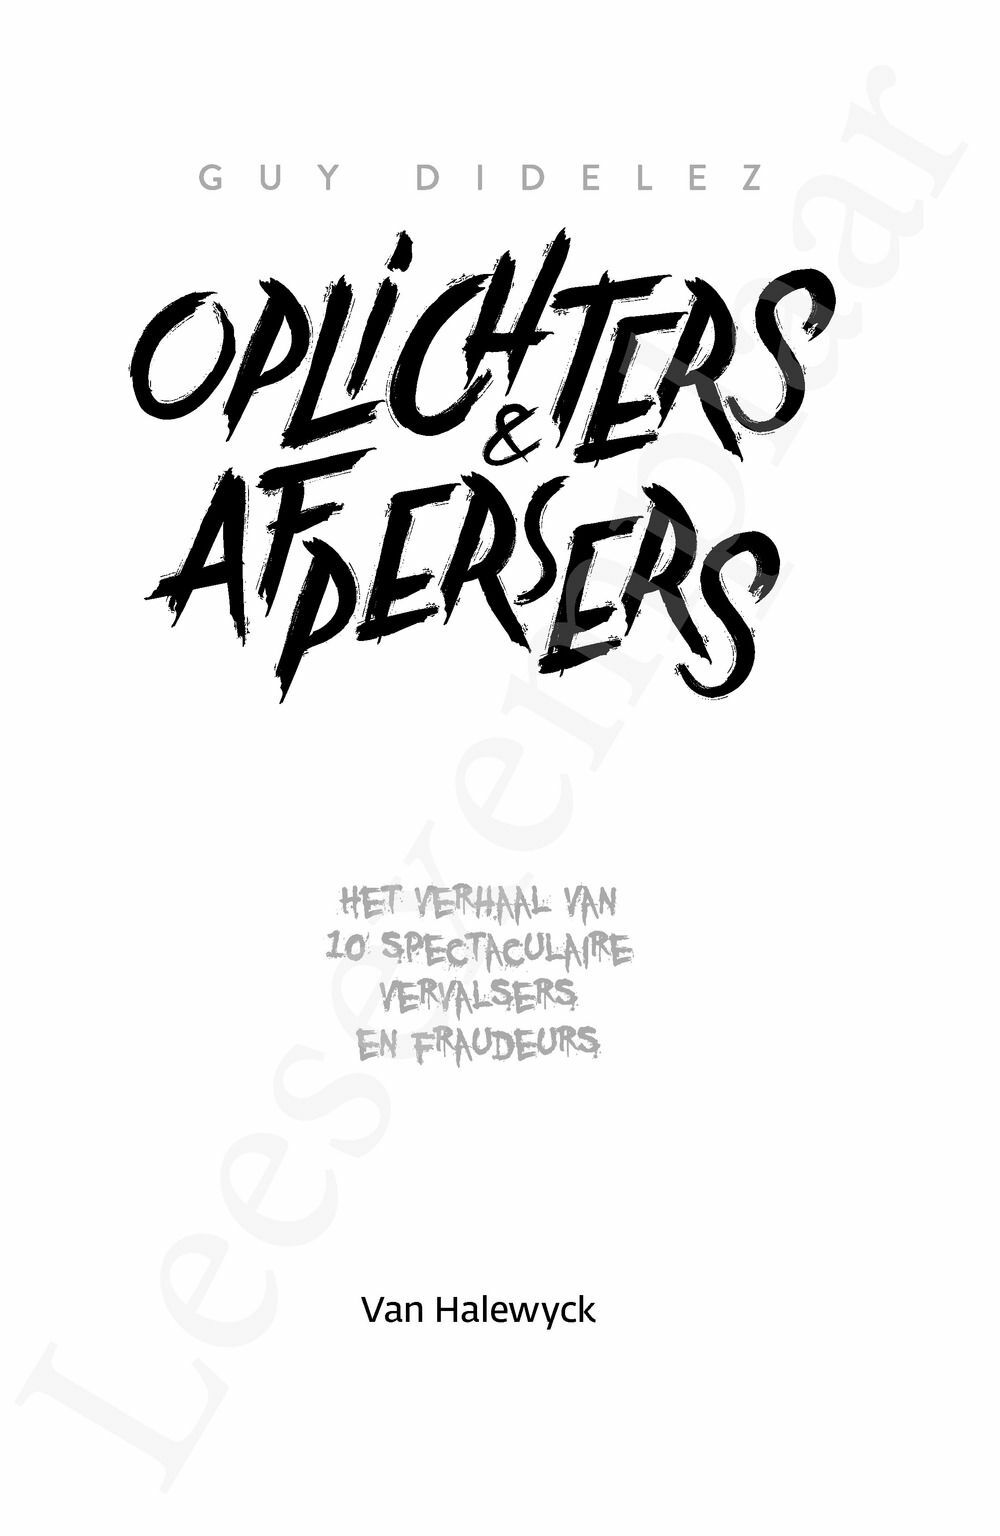 Preview: Oplichters en afpersers